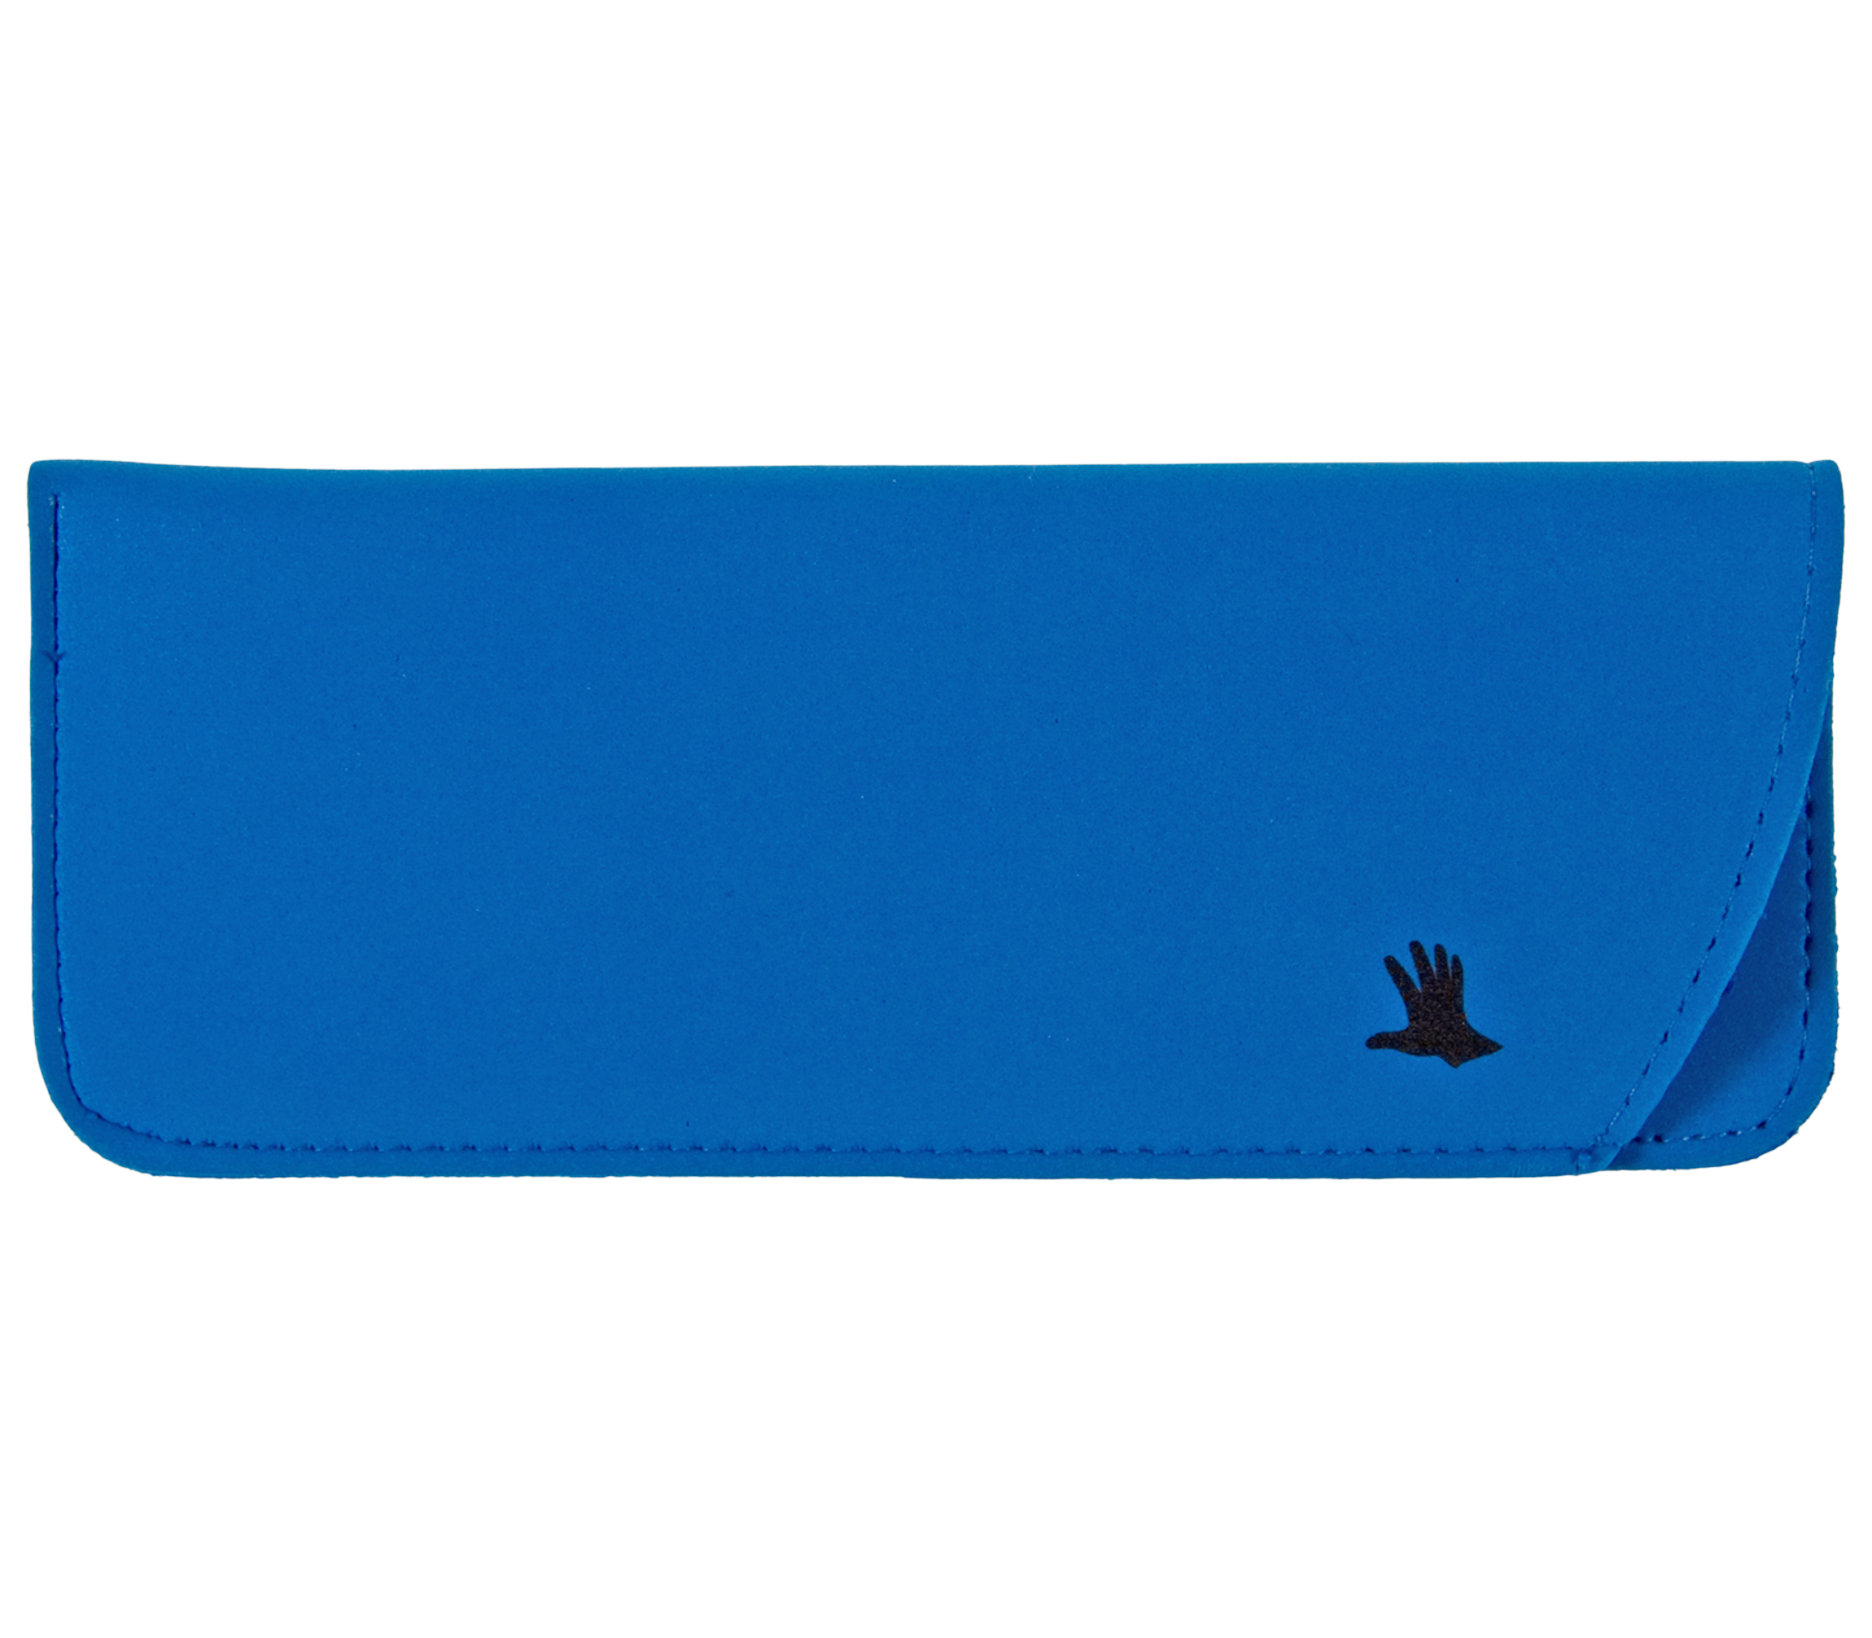 Case - Chester (Blue)